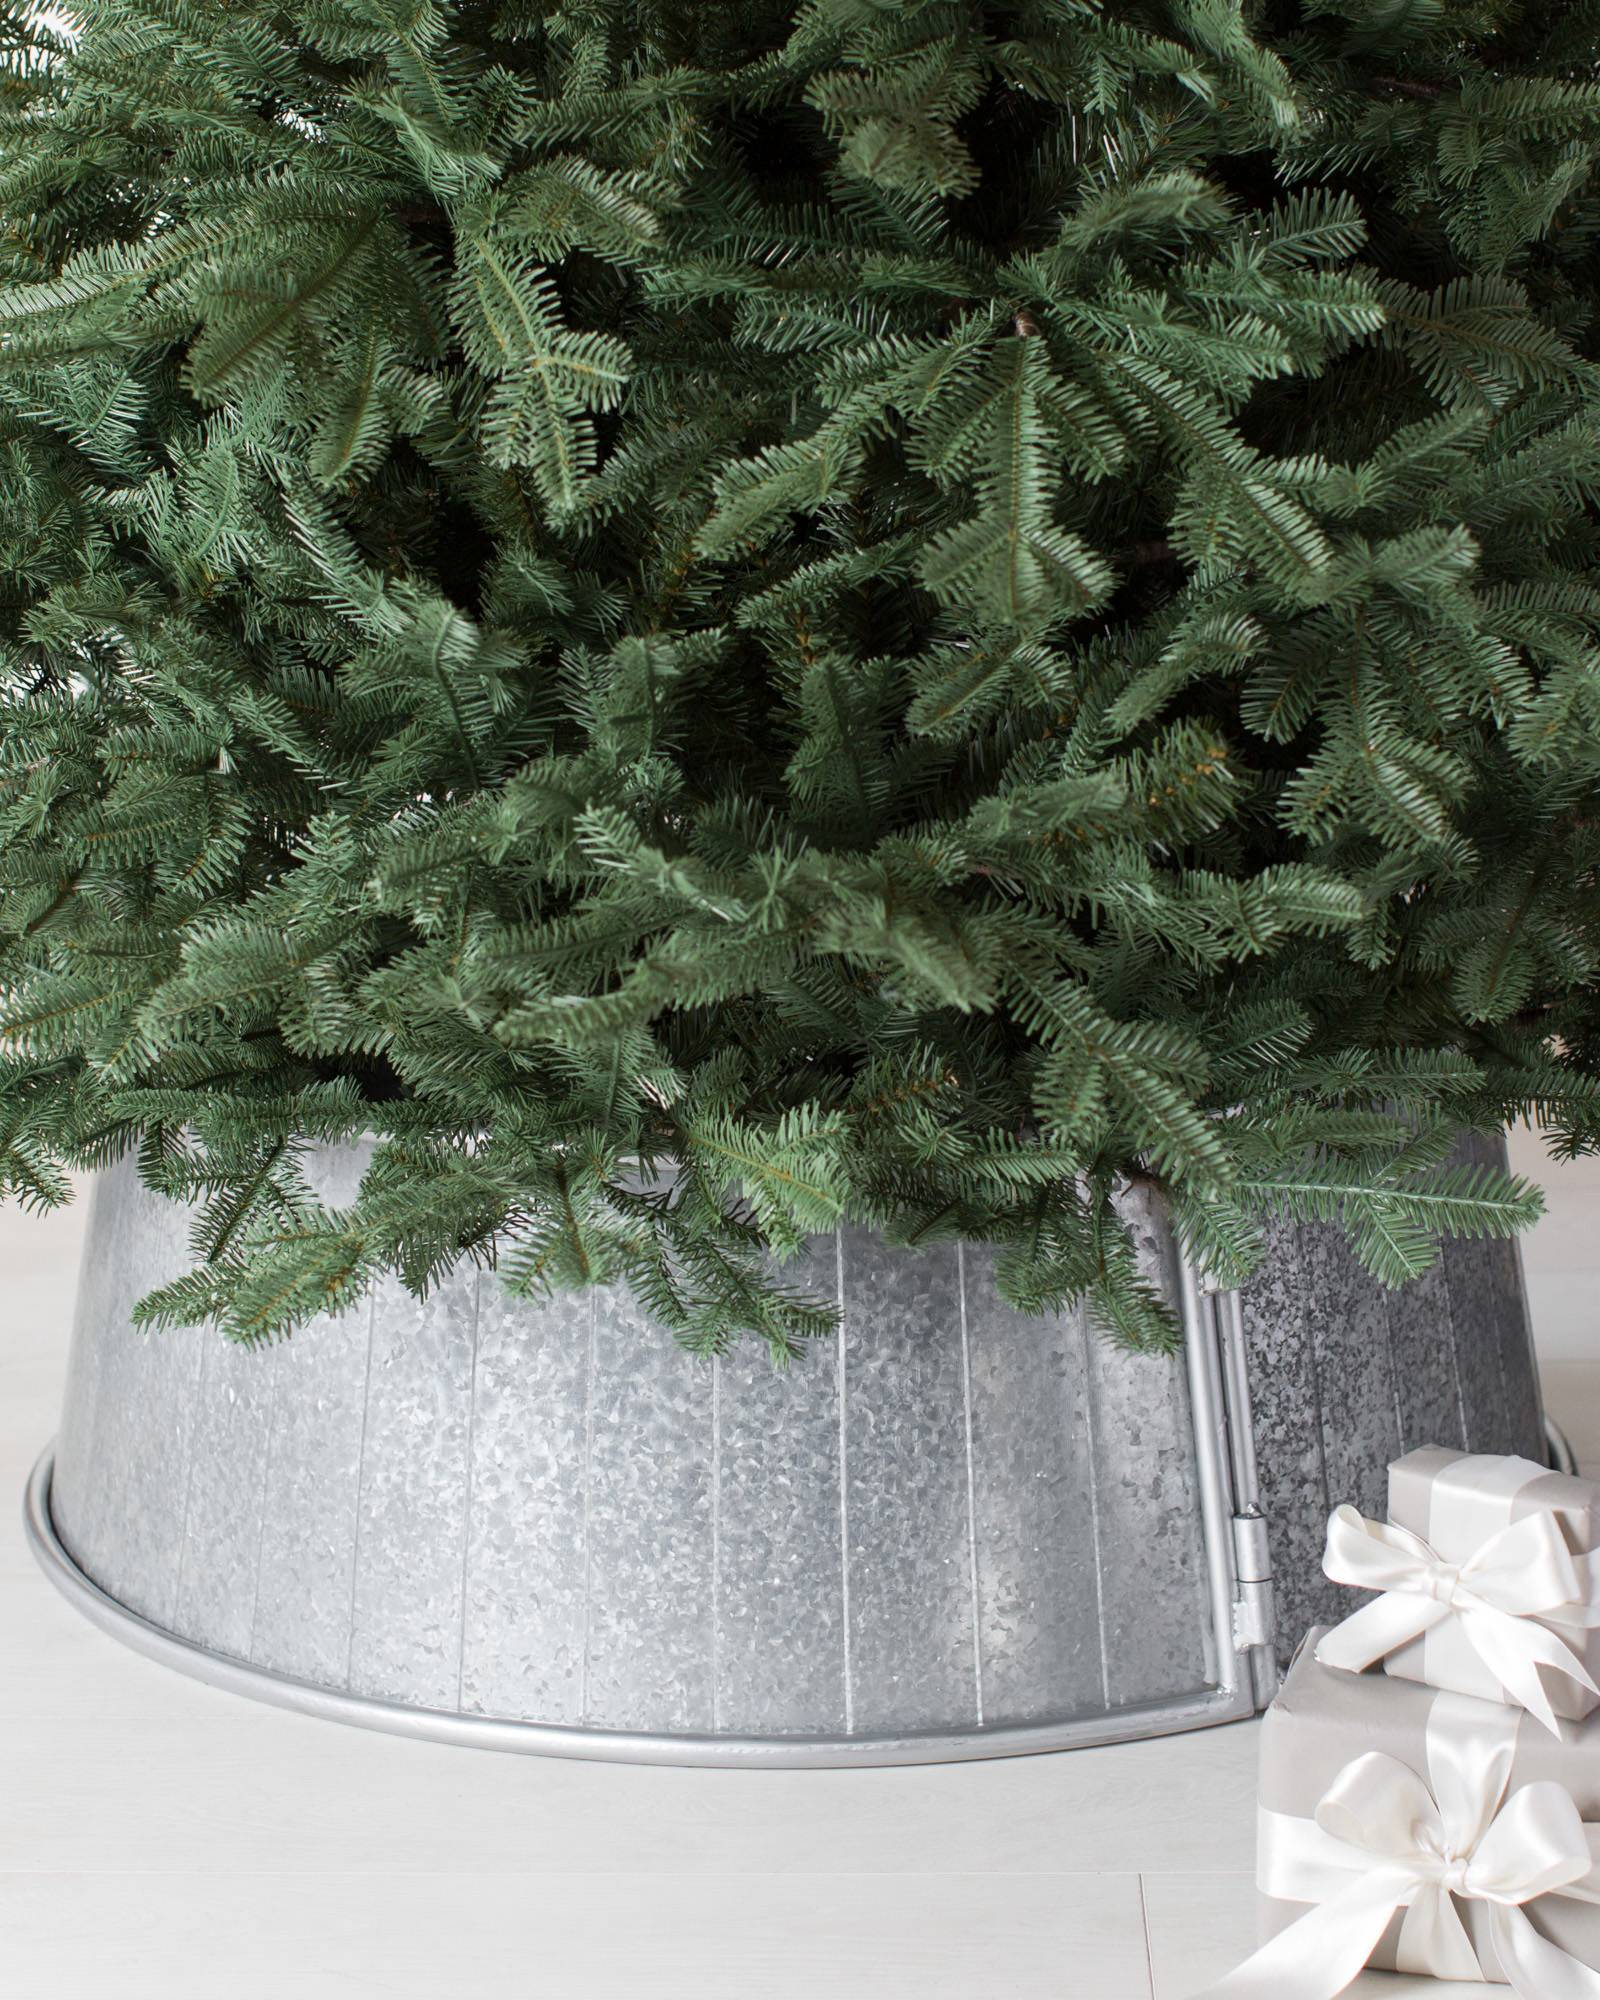 galvanized tree collar main - Rustic Christmas Tree Decorations For Sale